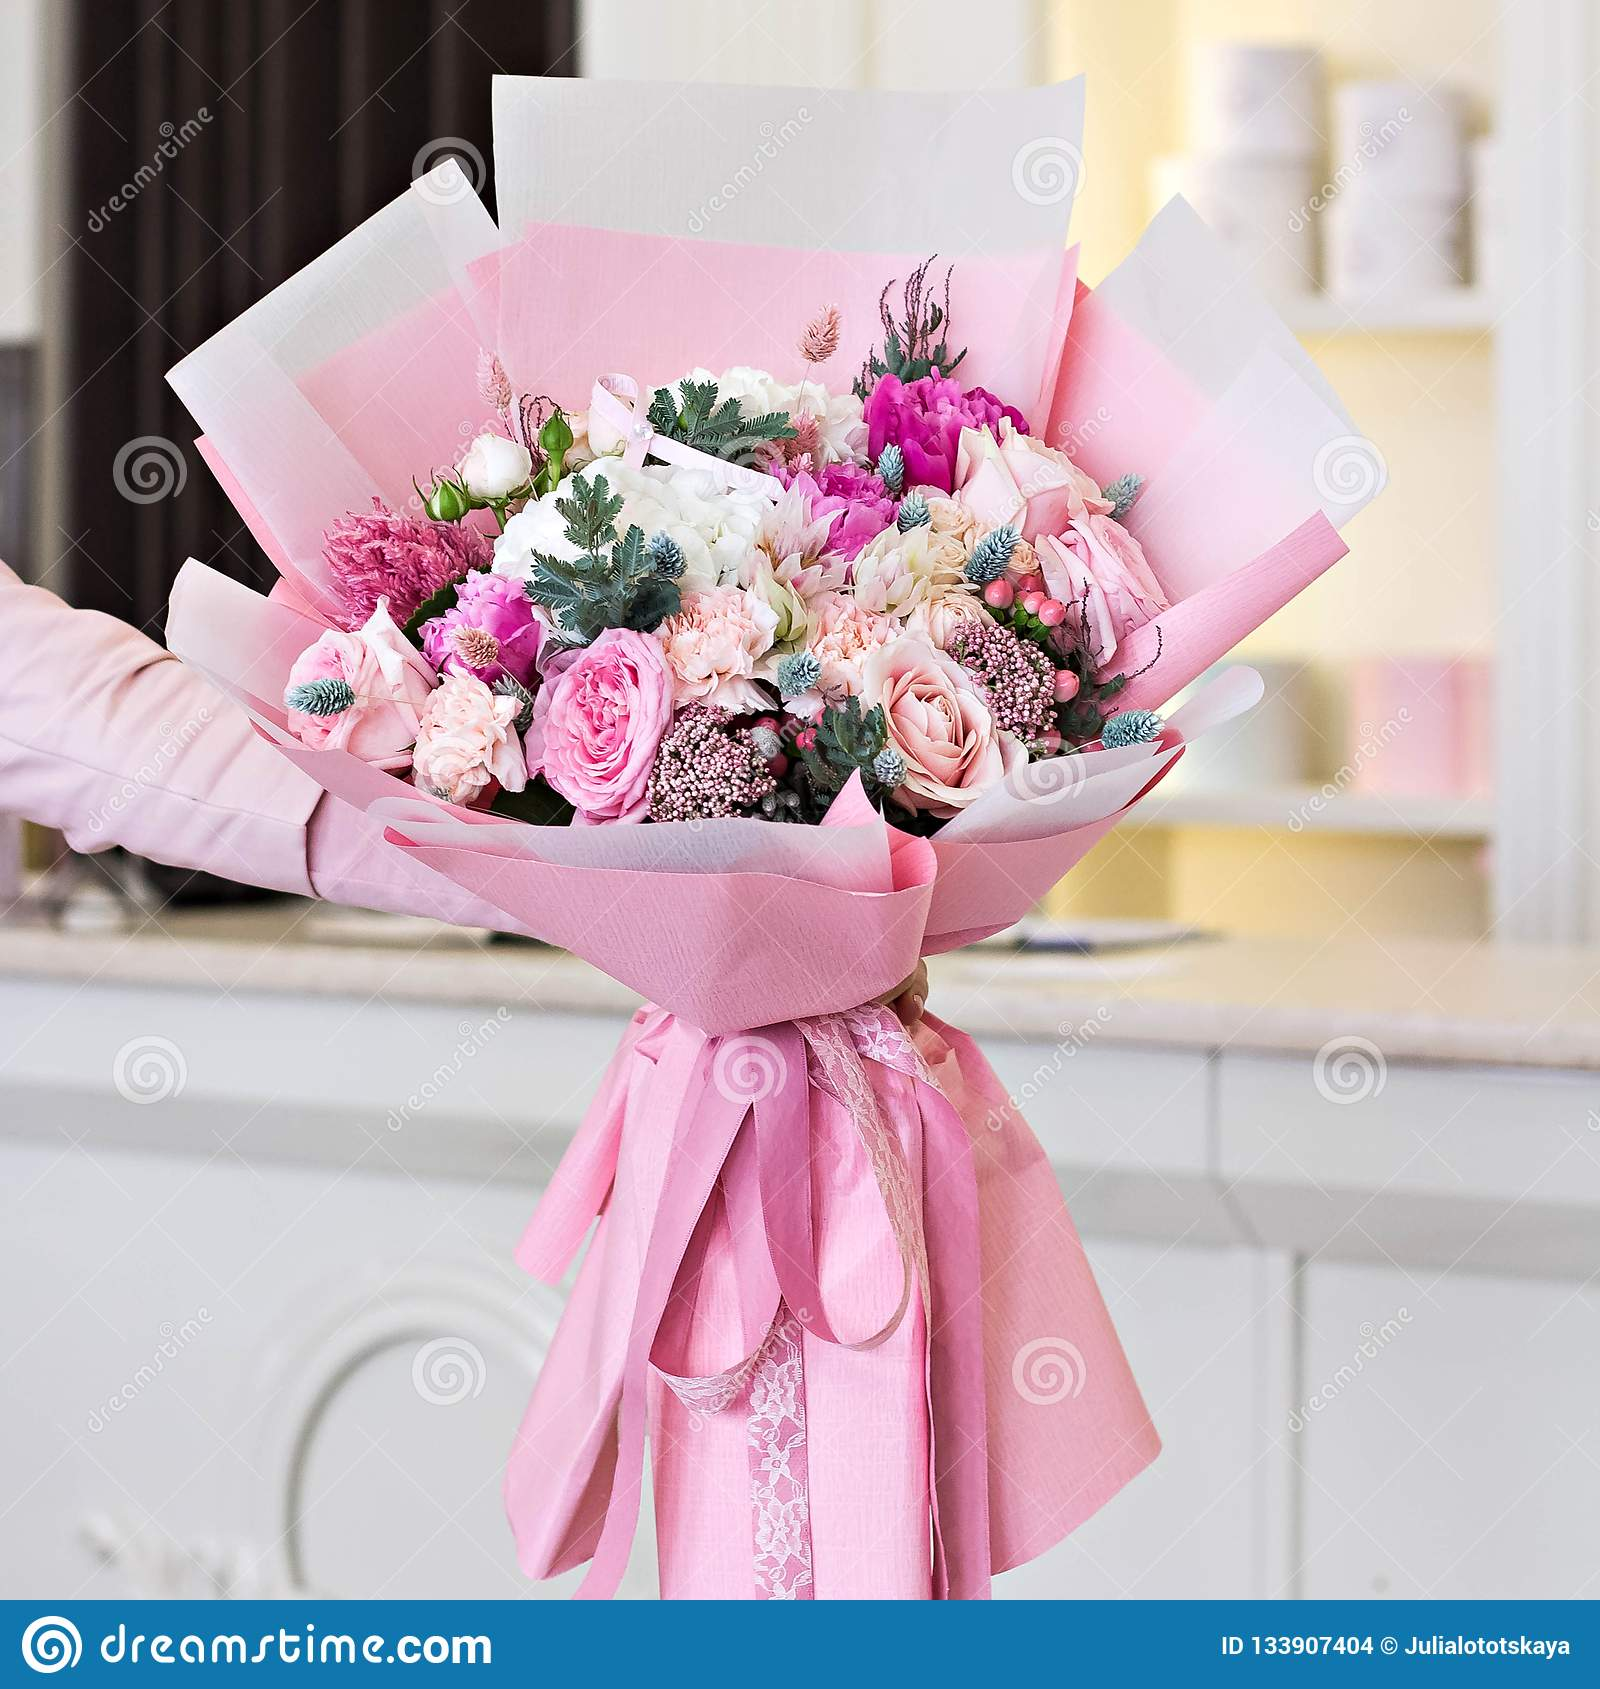 Beautiful Bouquet In Pink Wrapping Paper Roses And Other Delicate